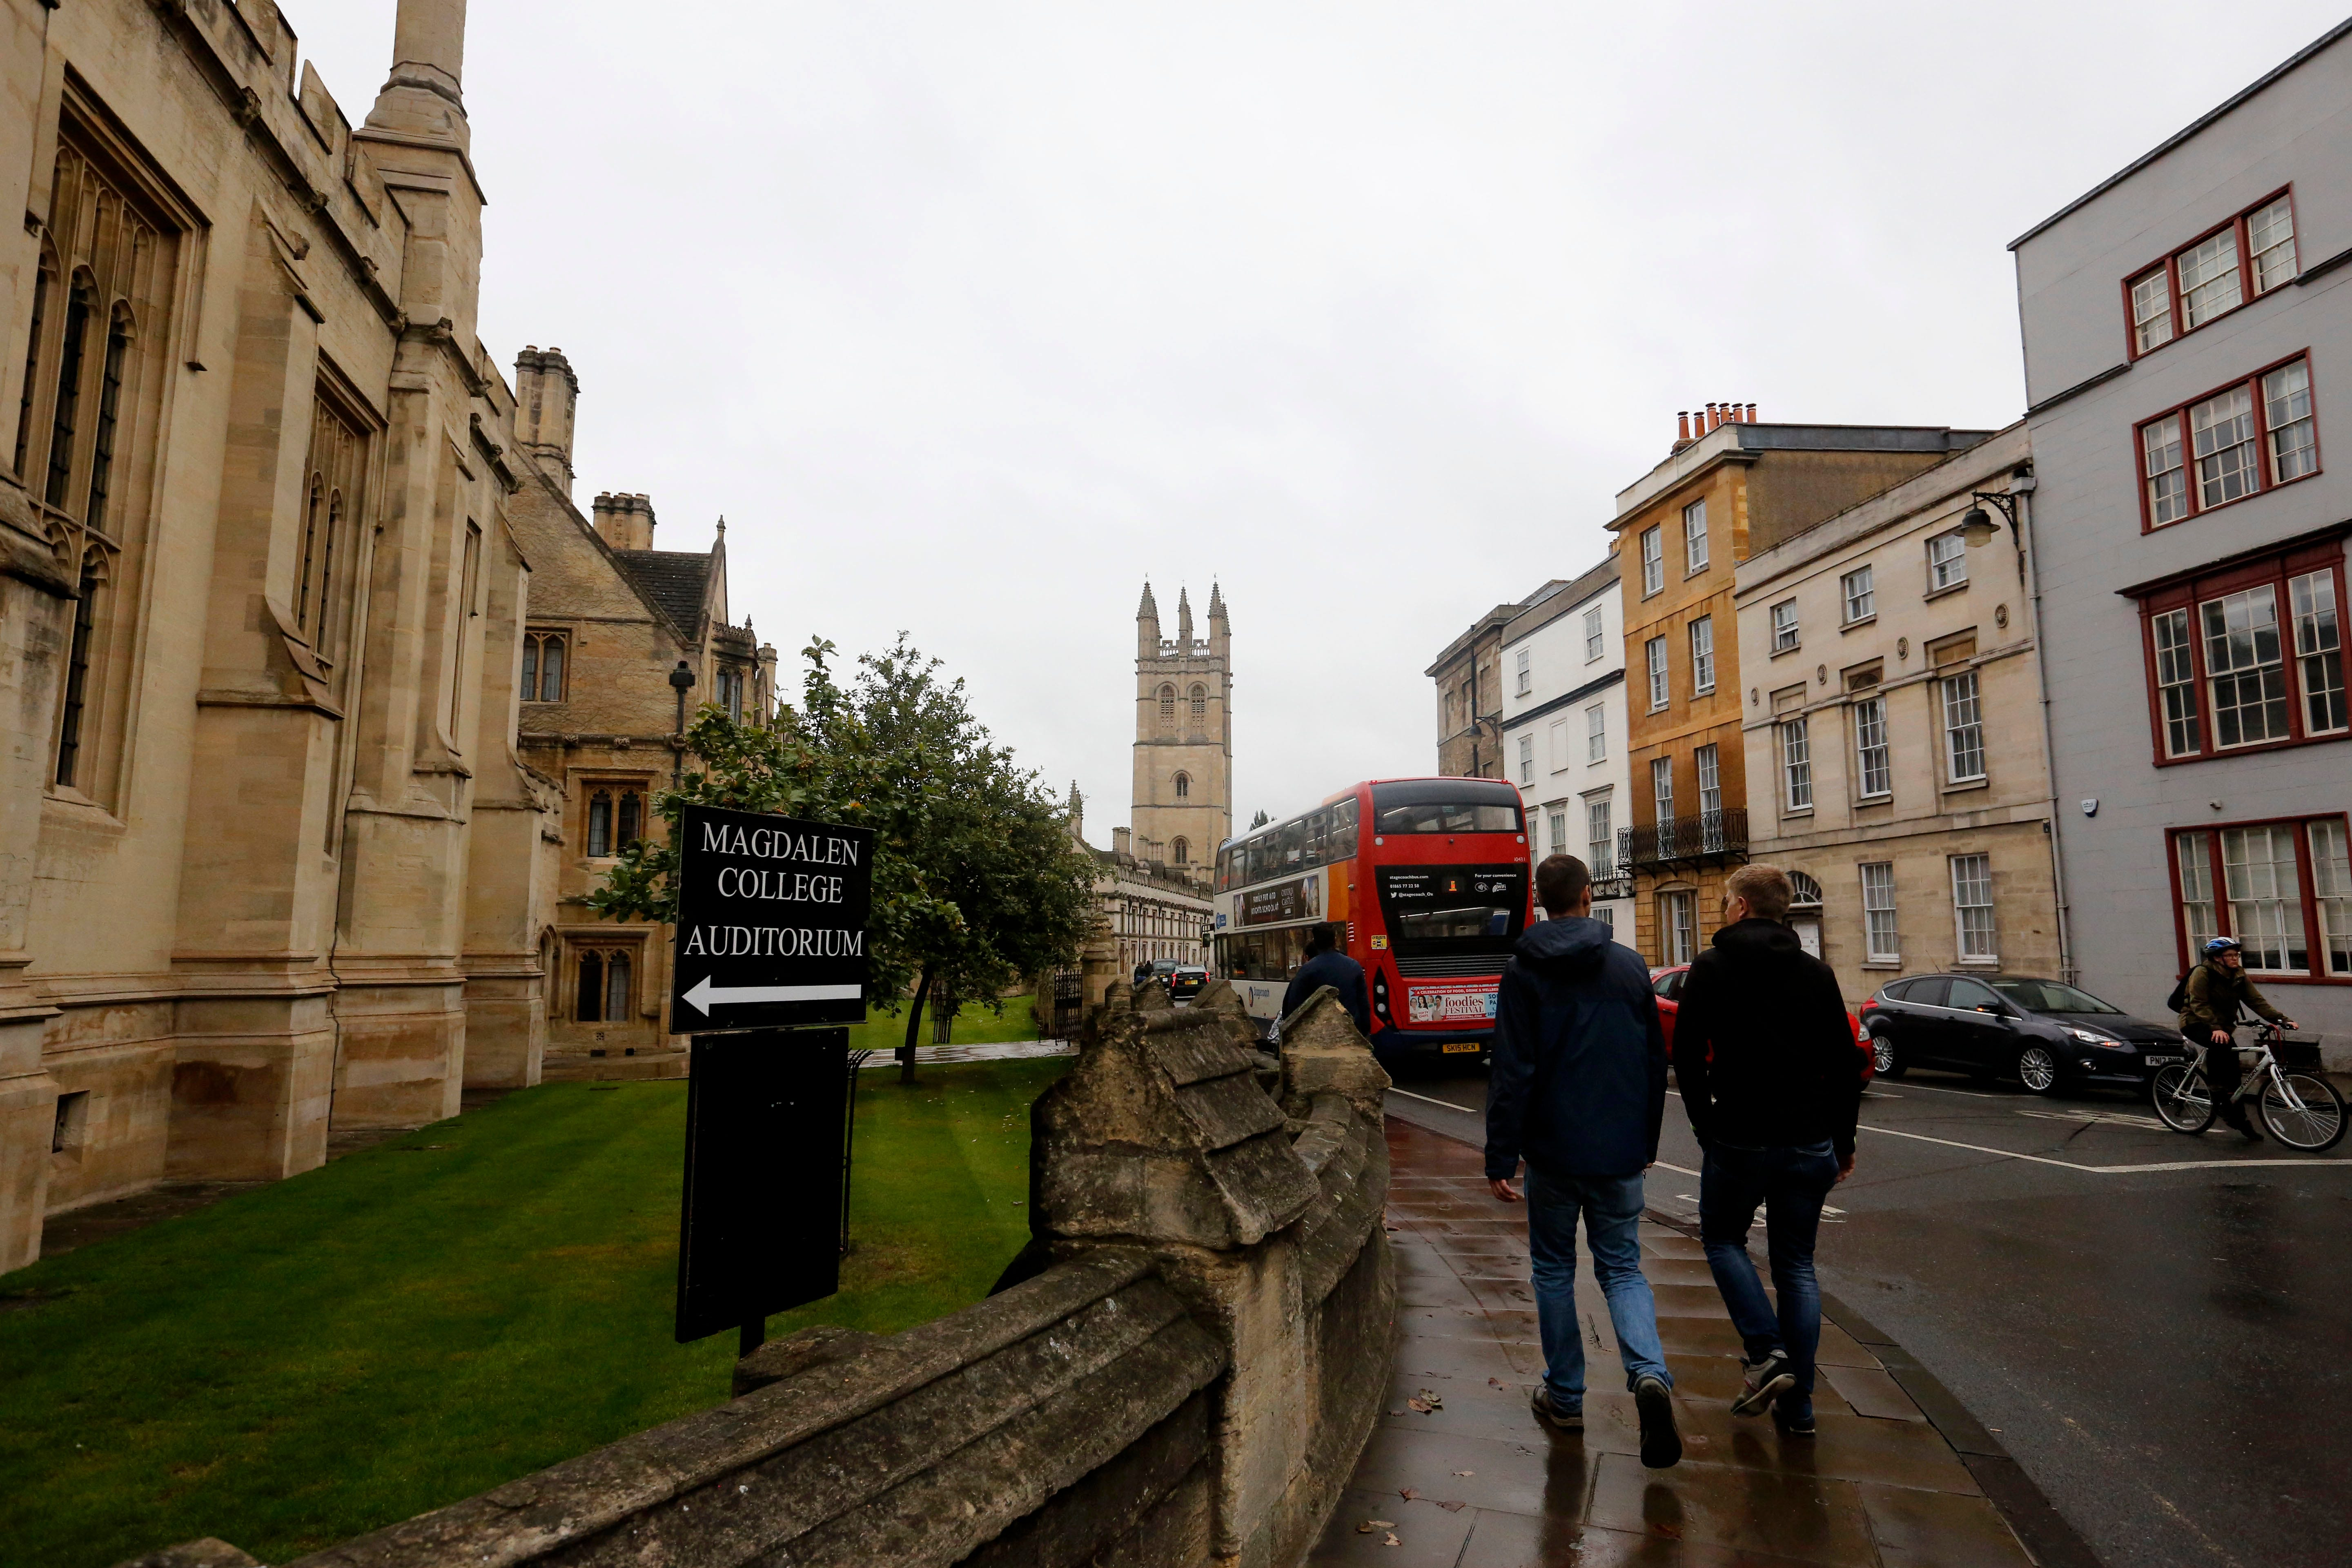 After Brexit, foreign students flee UK universities for U.S., Canada and Australia